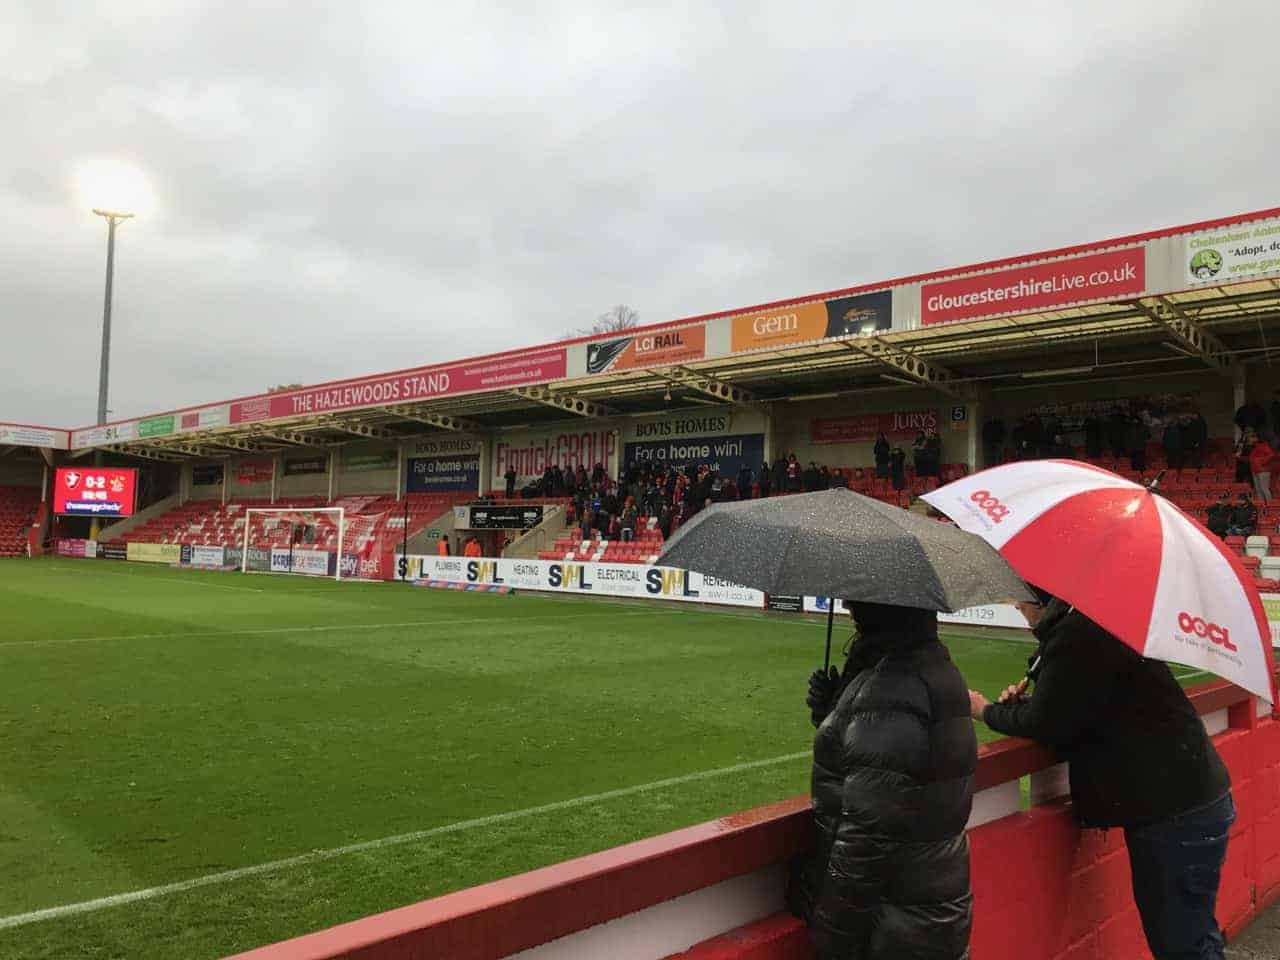 Supporters with umbrellas watching a game at Whaddon Road, home of Cheltenham Town FC.